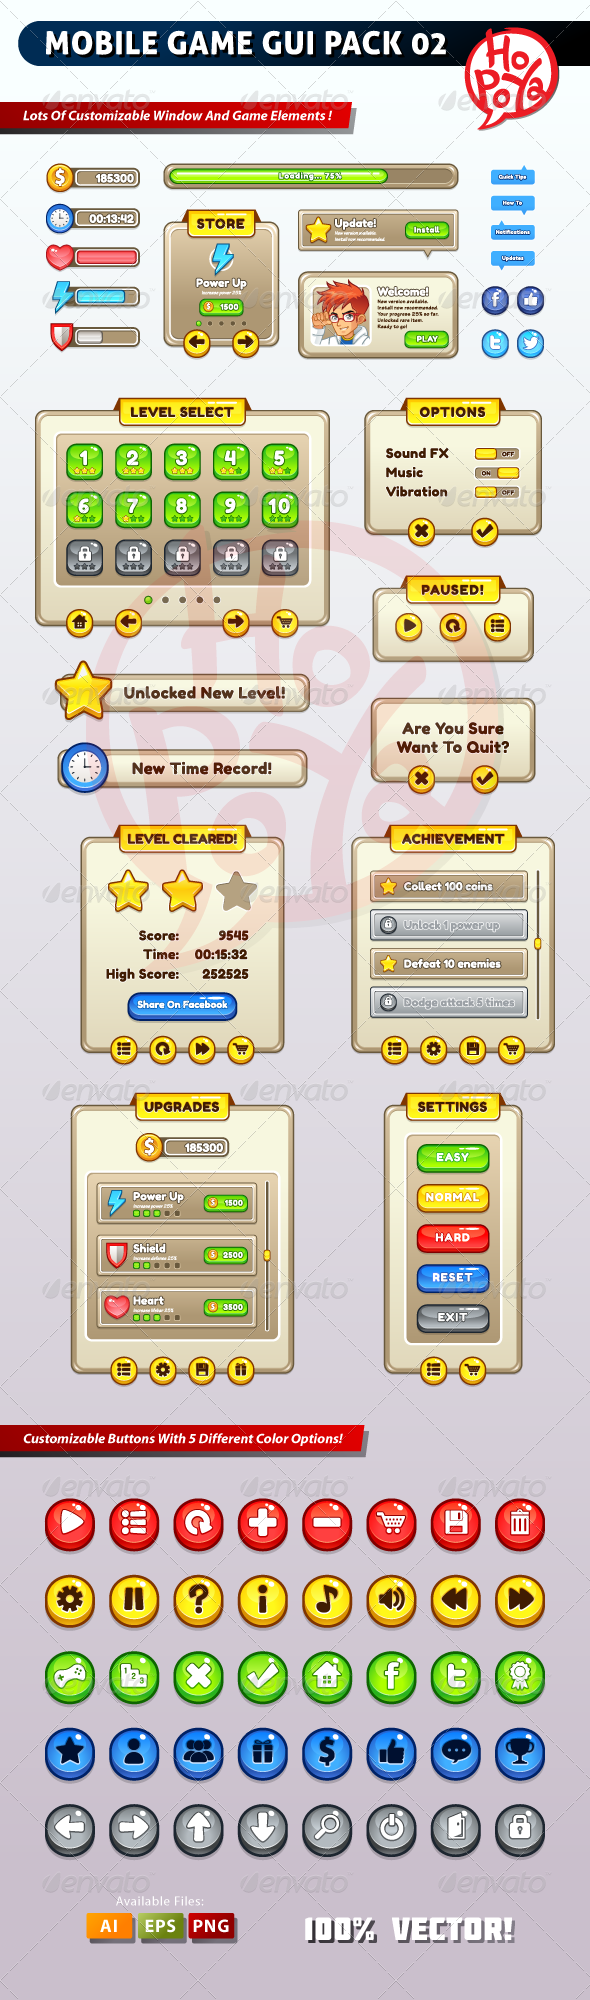 Mobile Game GUI Pack Mobile User Interface Template Vector EPS, Vector AI. Download here: http://graphicriver.net/item/mobile-game-gui-pack-02/6331982?s_rank=2&ref=yinkira